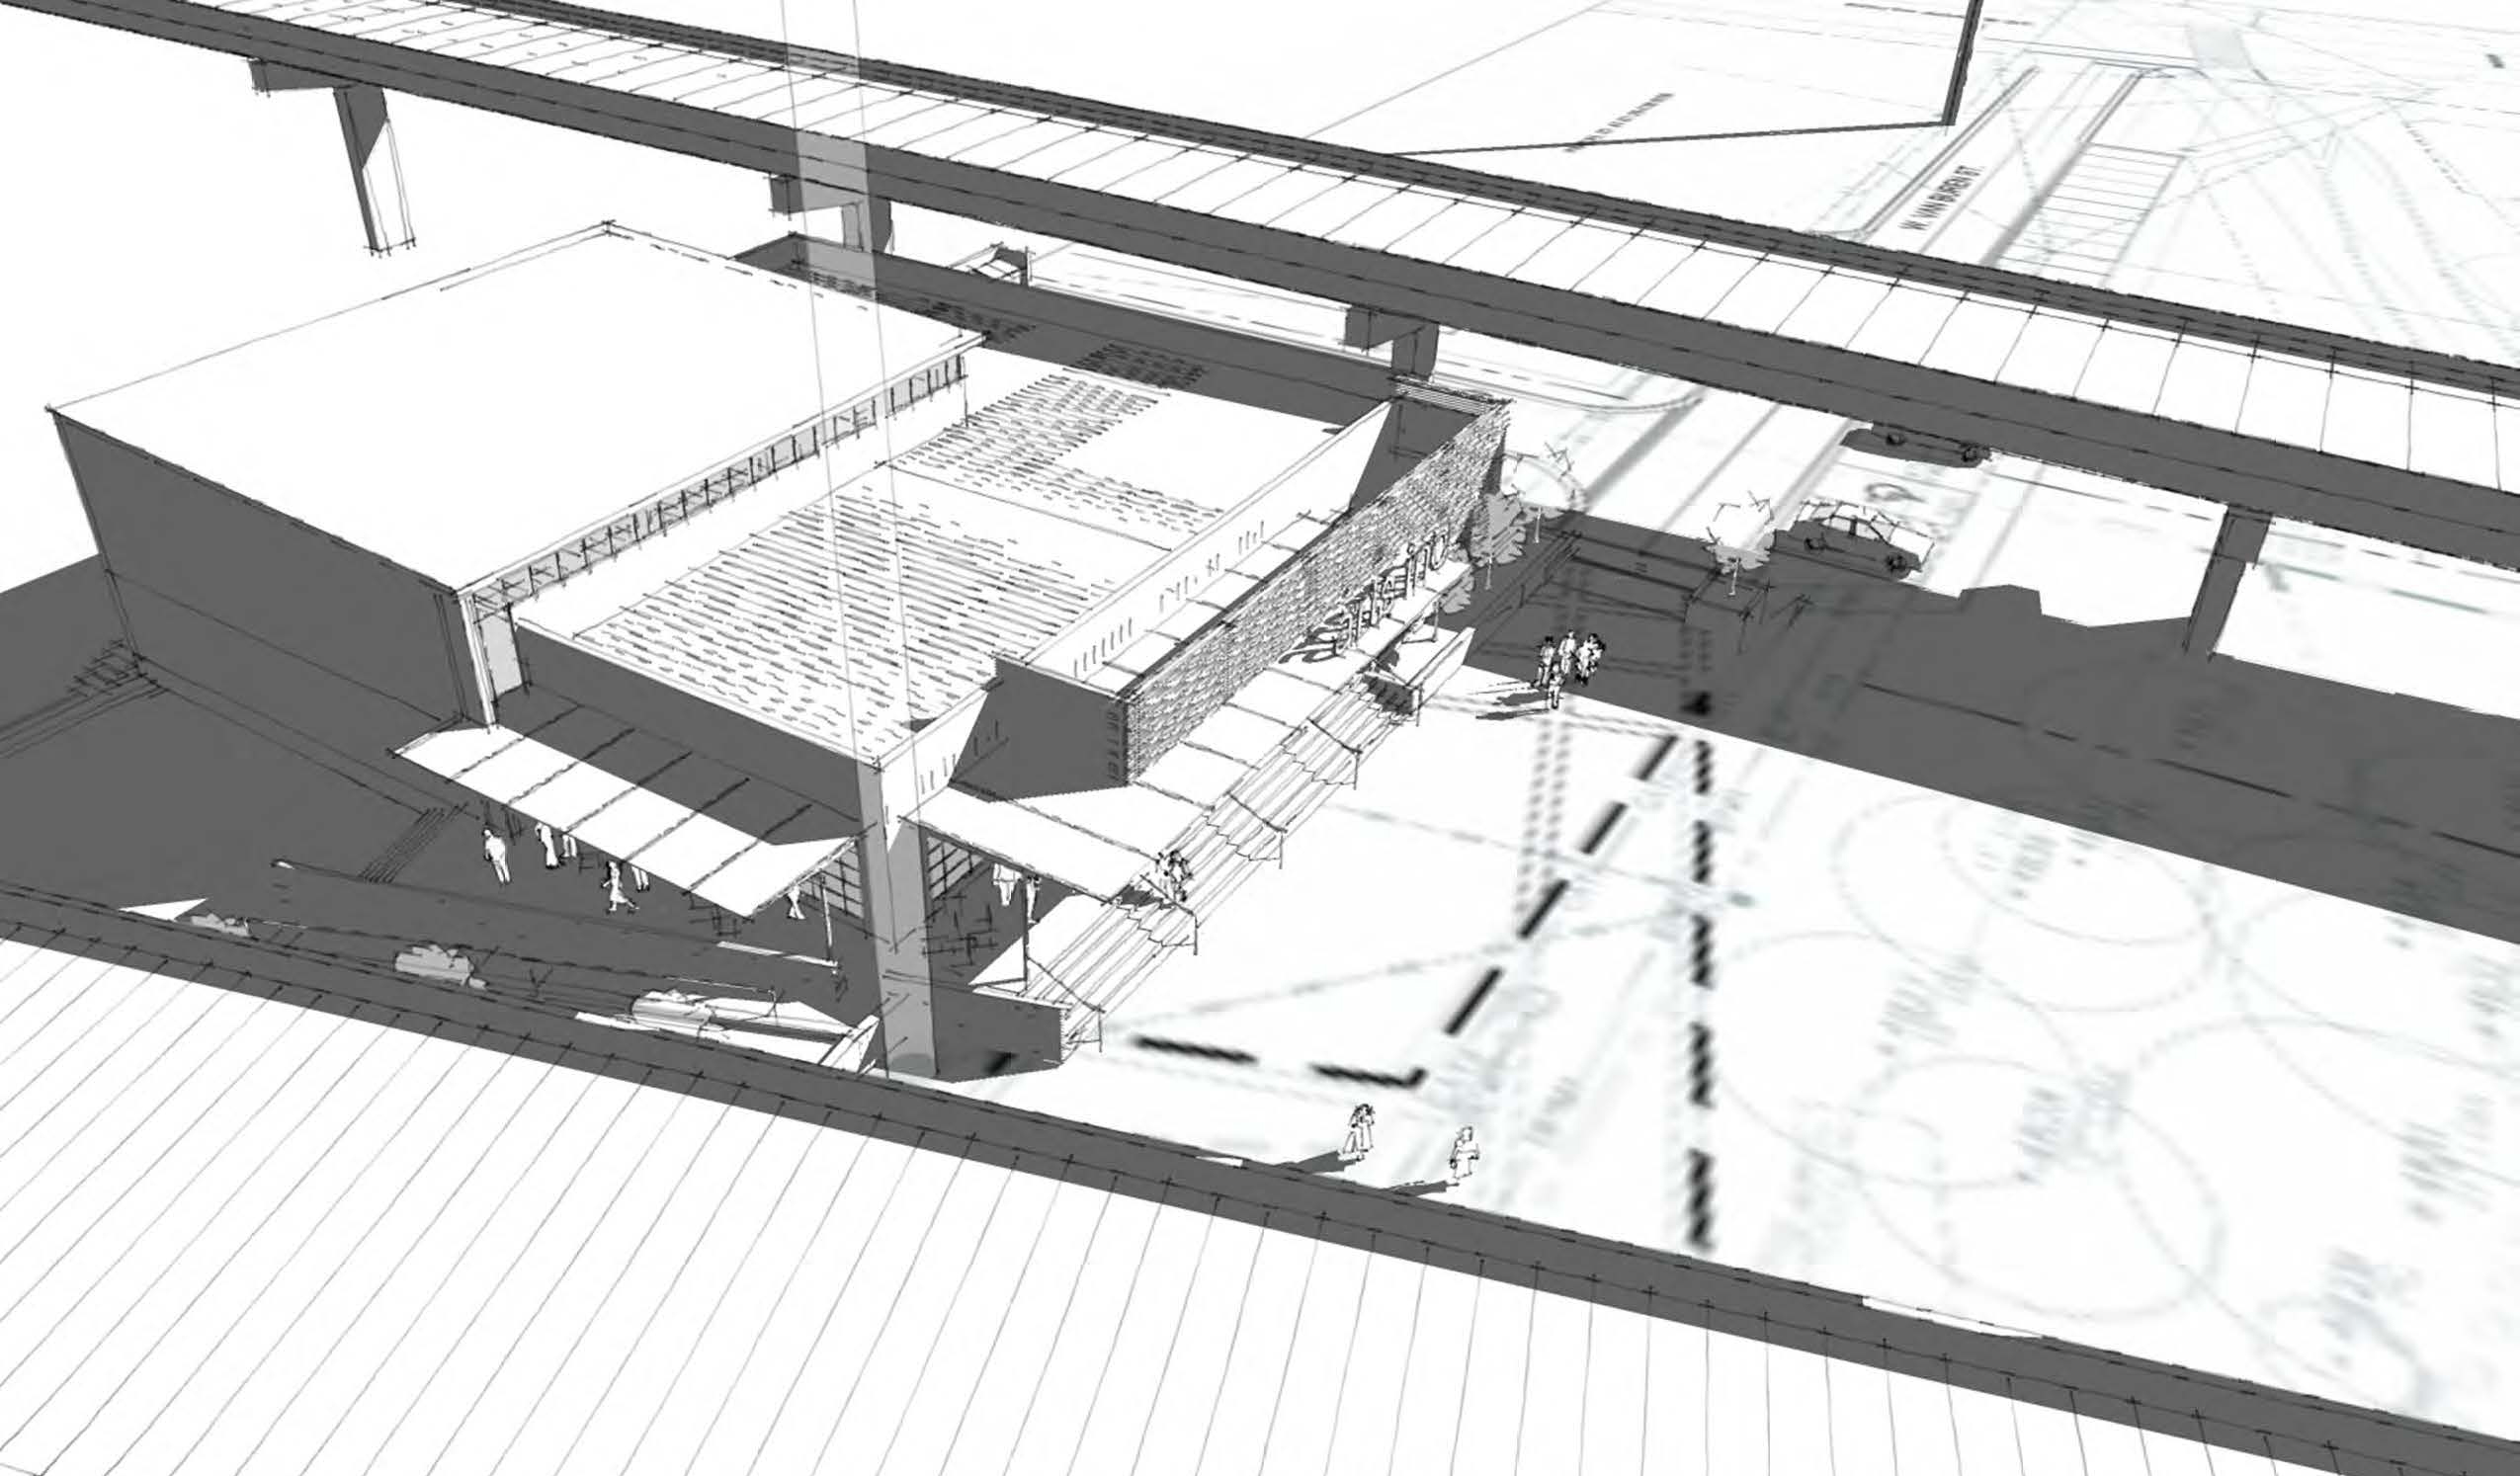 Arts Incubator Space - Program-Plan_Narrative_Renderings_4.1